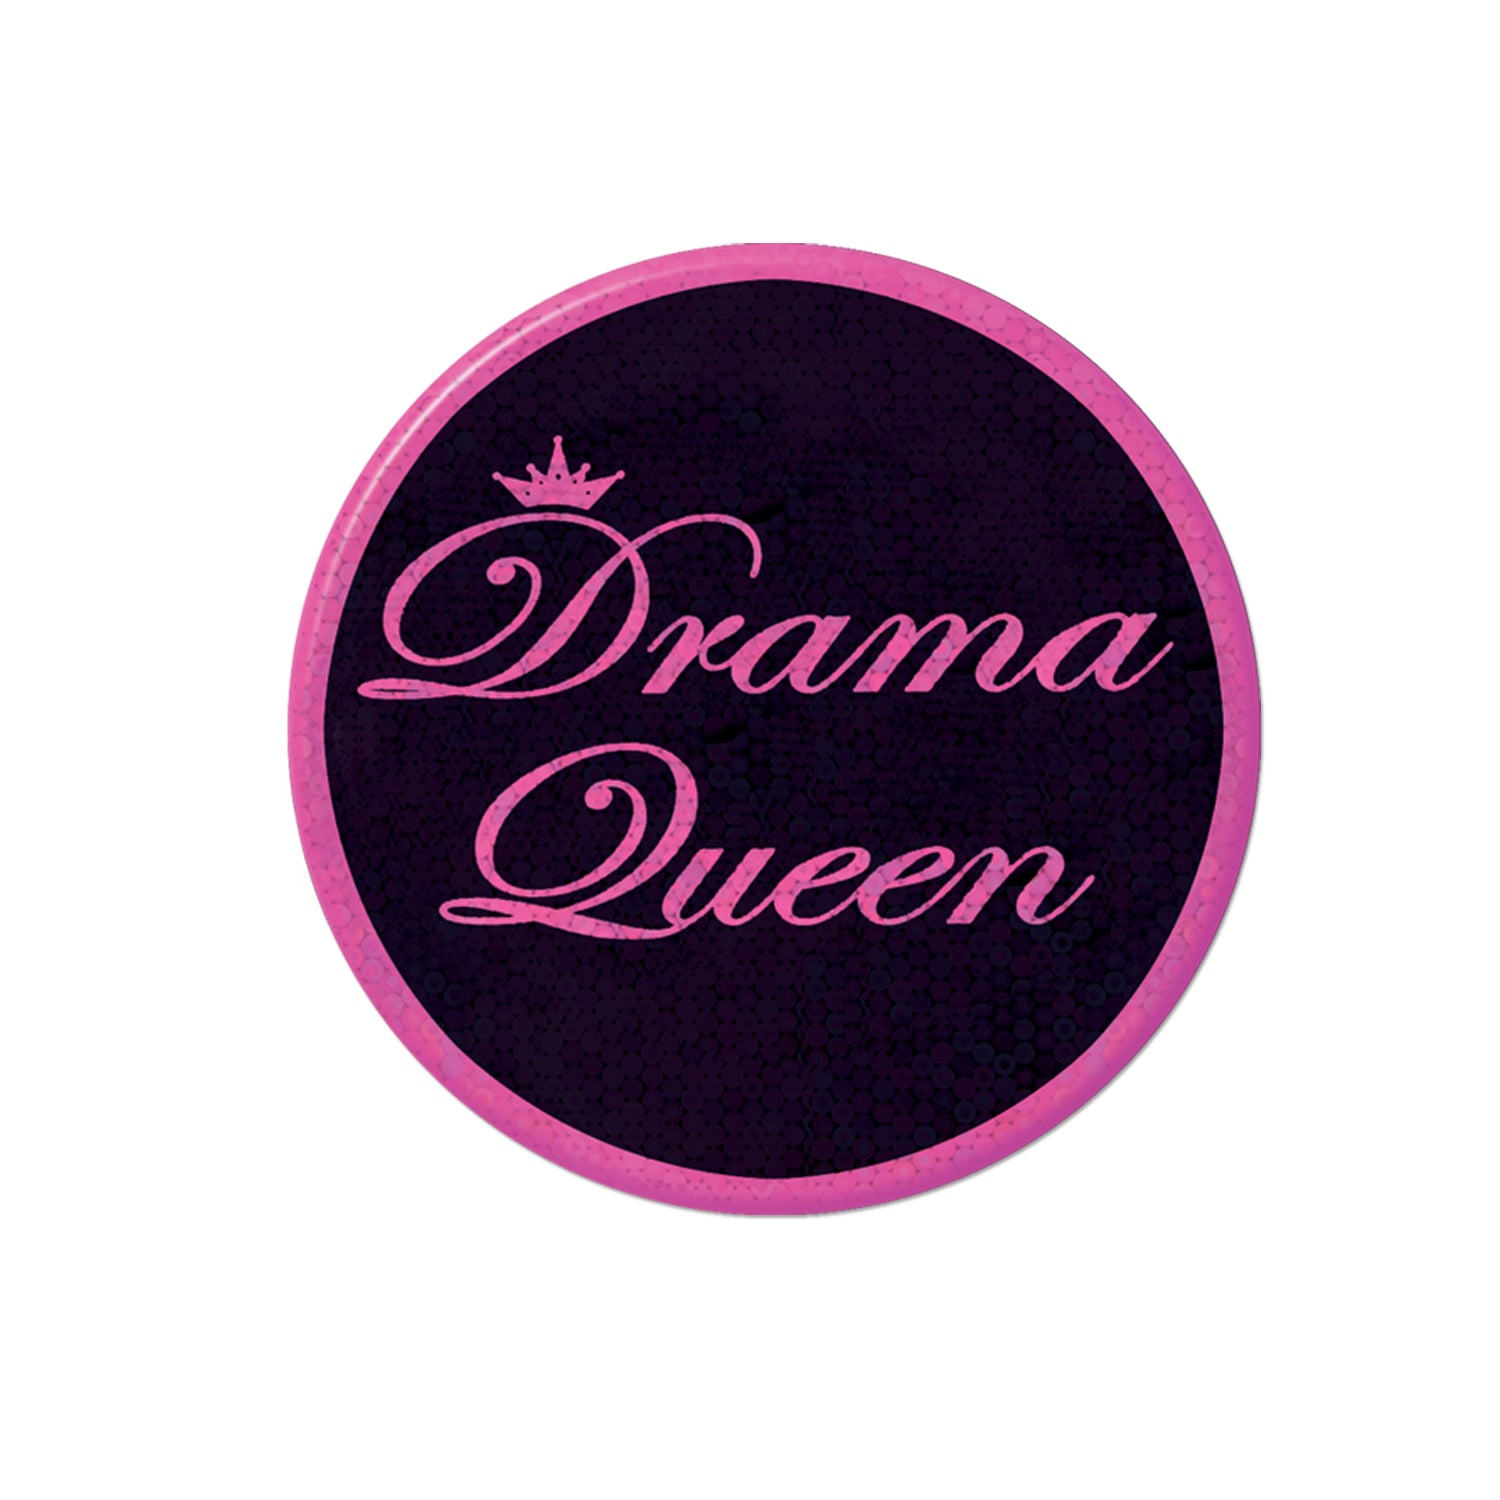 Drama Queen Button by Beistle - Diva/Drama Queen Theme Decorations